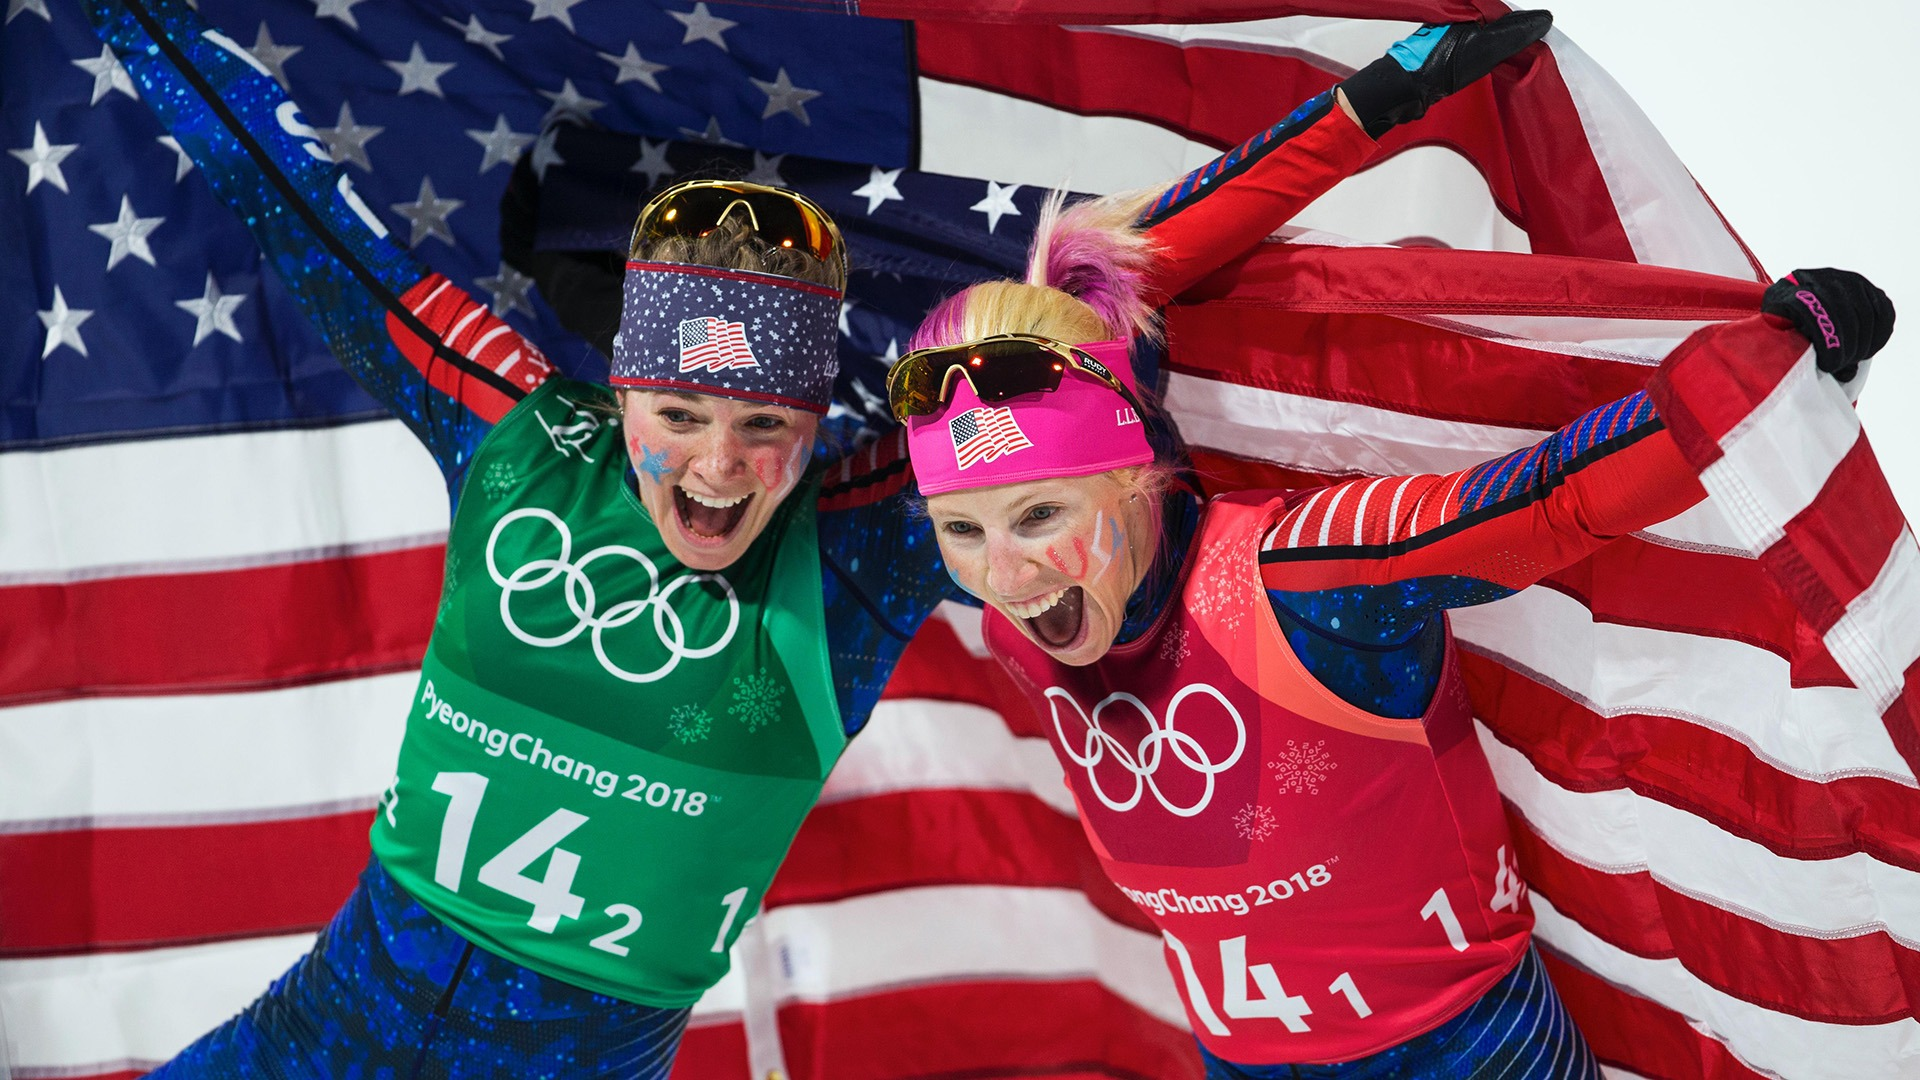 Kikkan Randall (right) and Jessie Diggins hold aloft an American gflag and celebrate their gold medal